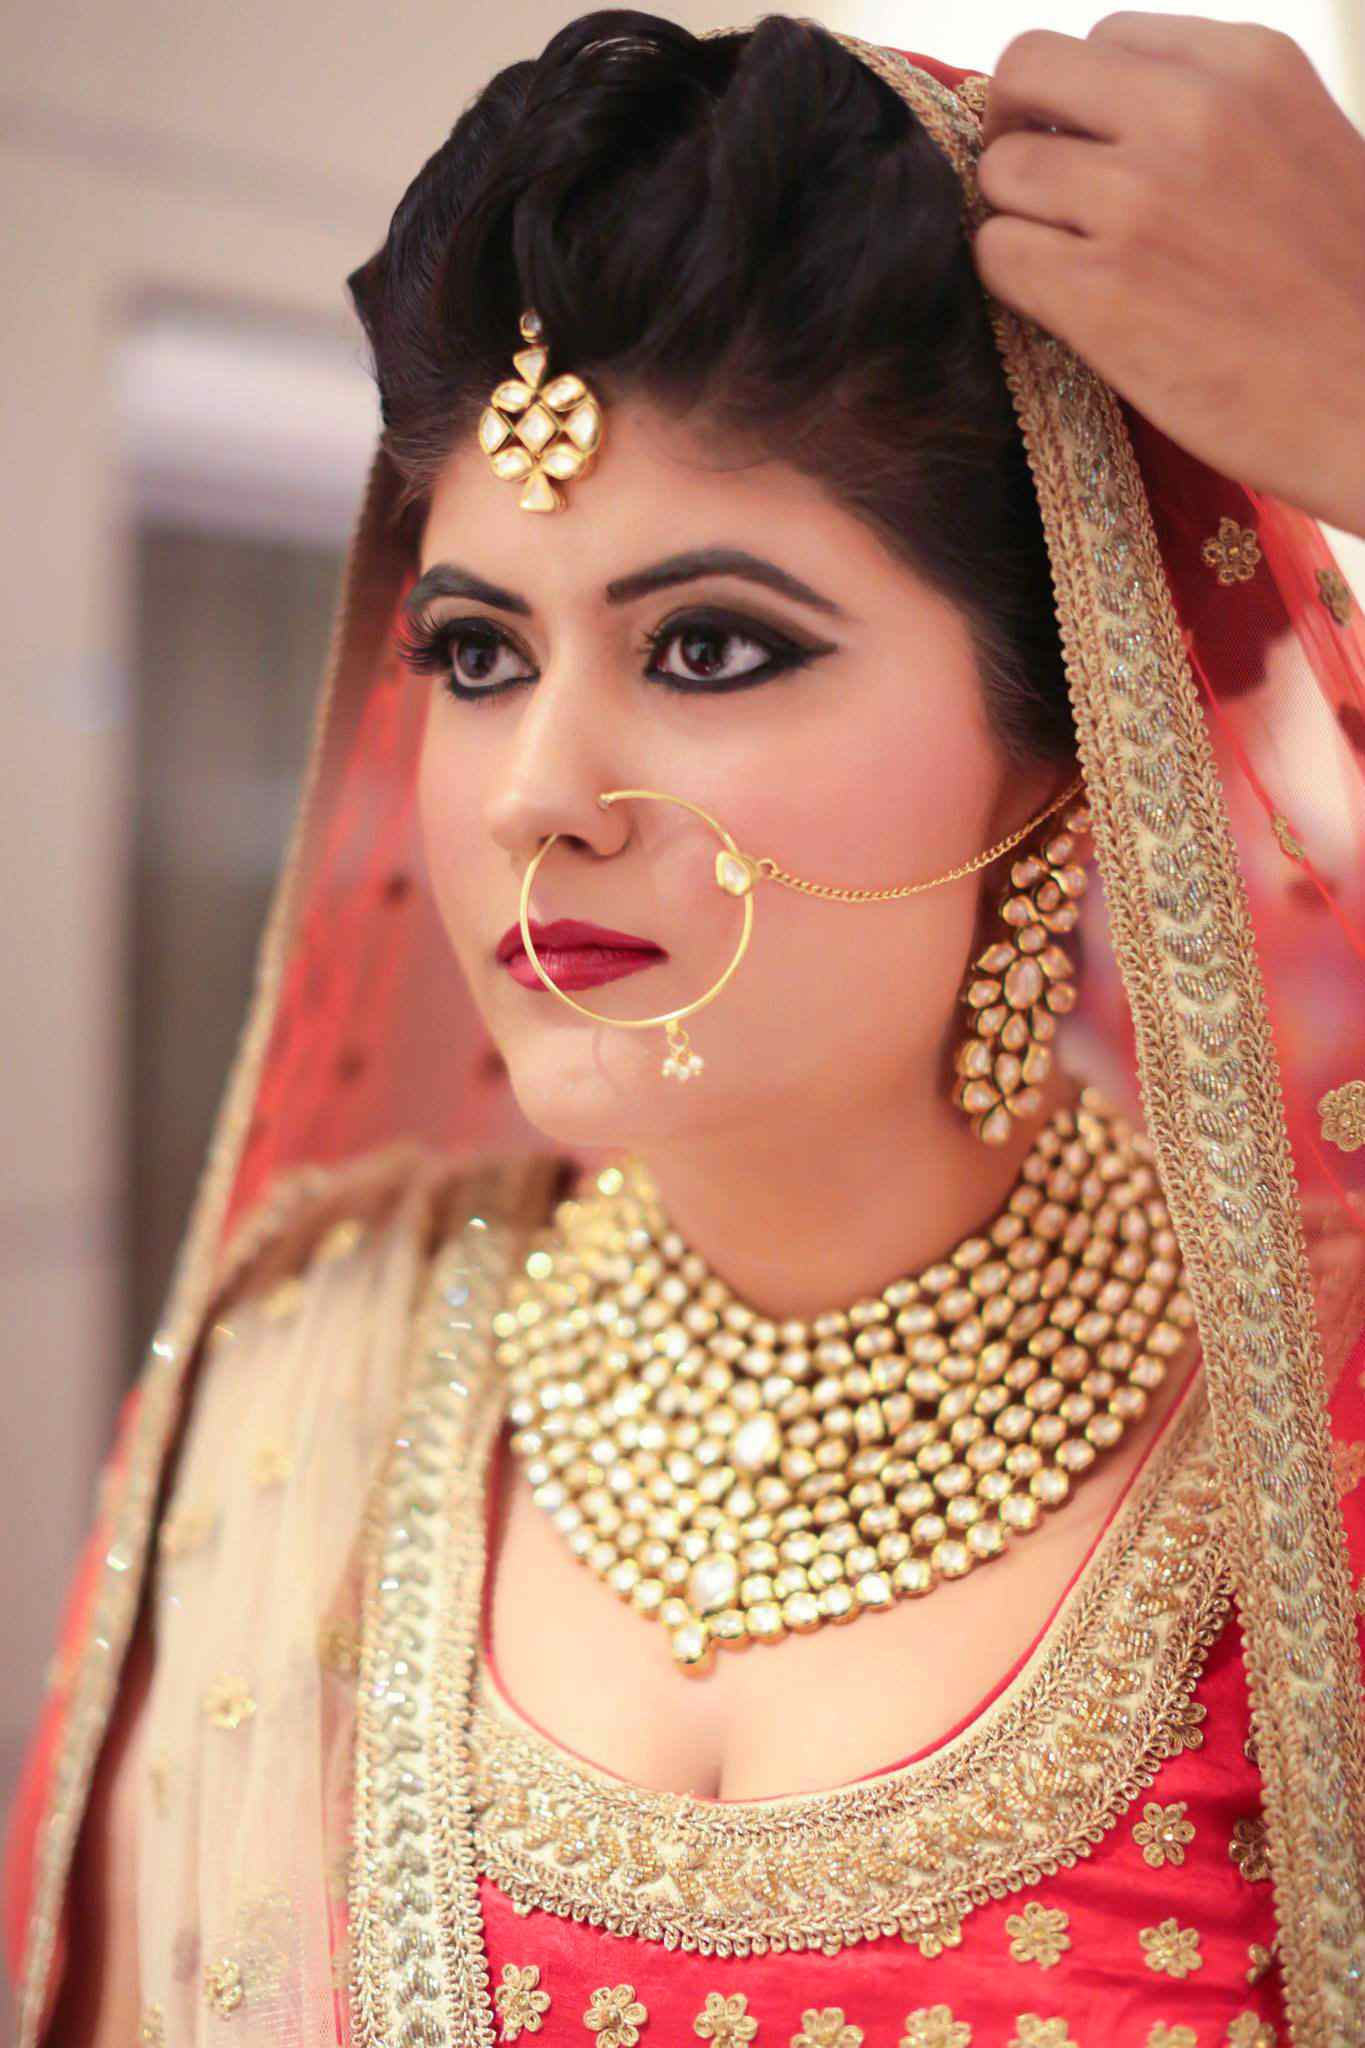 Clean Your Face Bridal Makeup